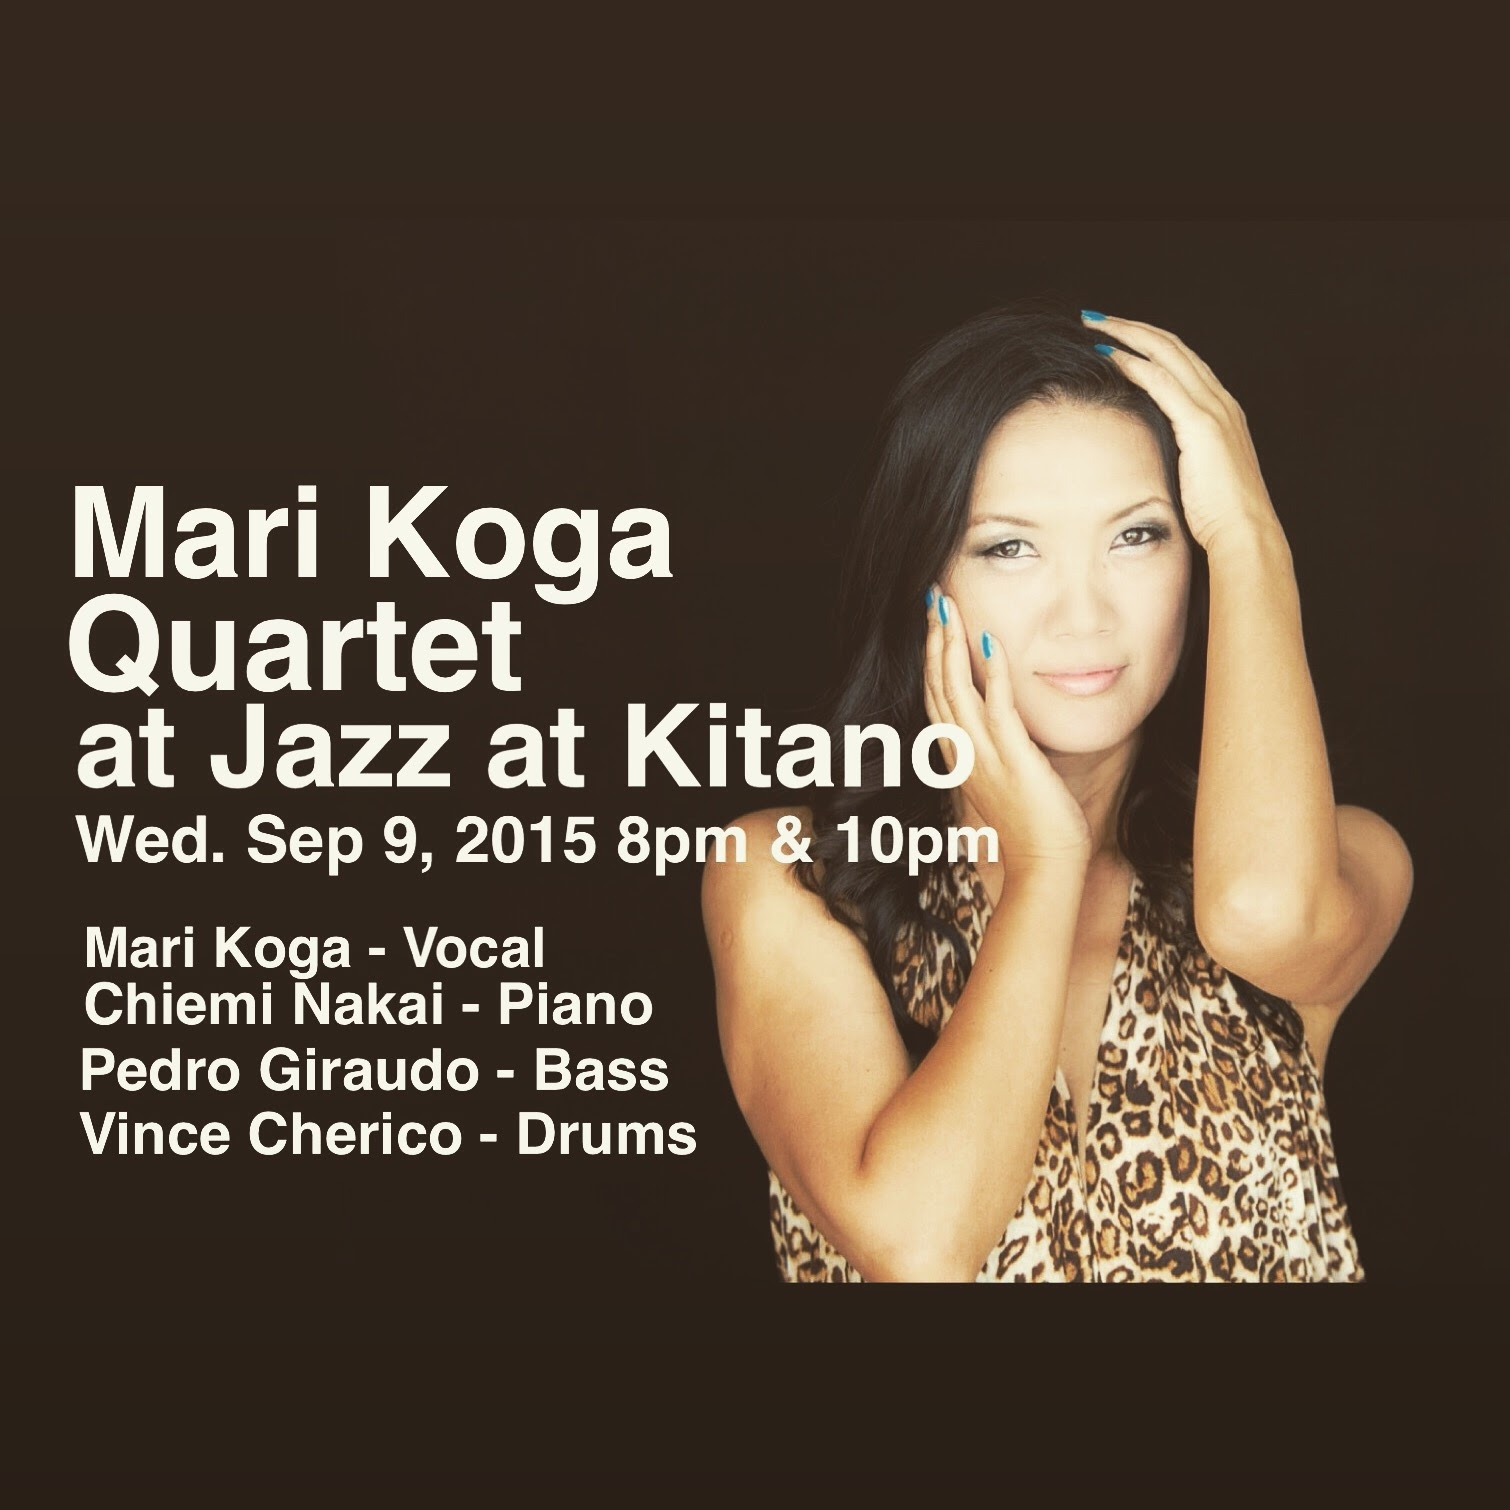 Mari Koga Quartet  at Jazz at Kitano